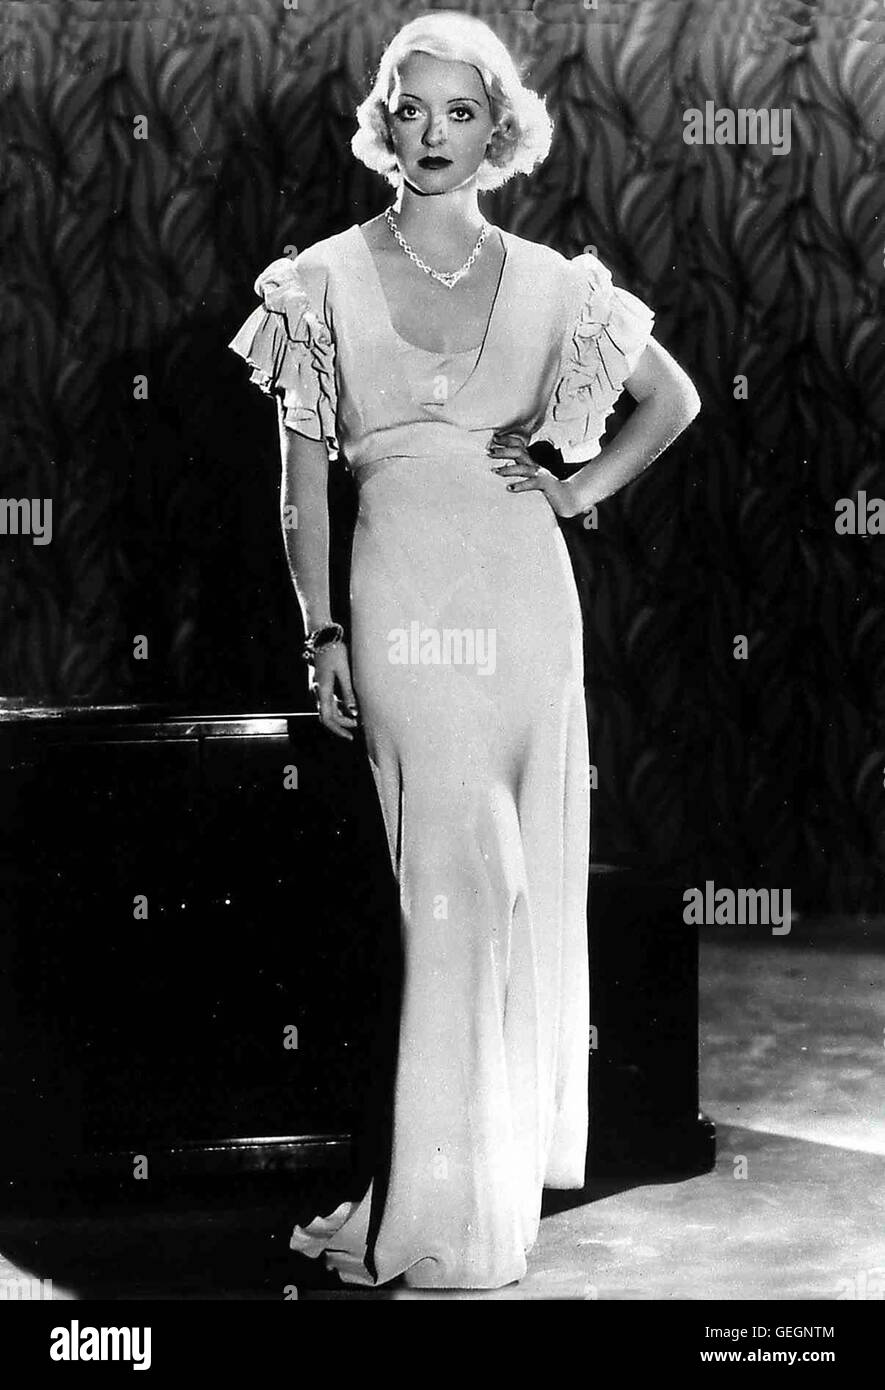 Bette Davis in Film - THE CABIN IN THE COTTON, USA 1932 *** Local Caption ***, 1930er, 1930s, Fashion, Film, Portrait, Stock Photo